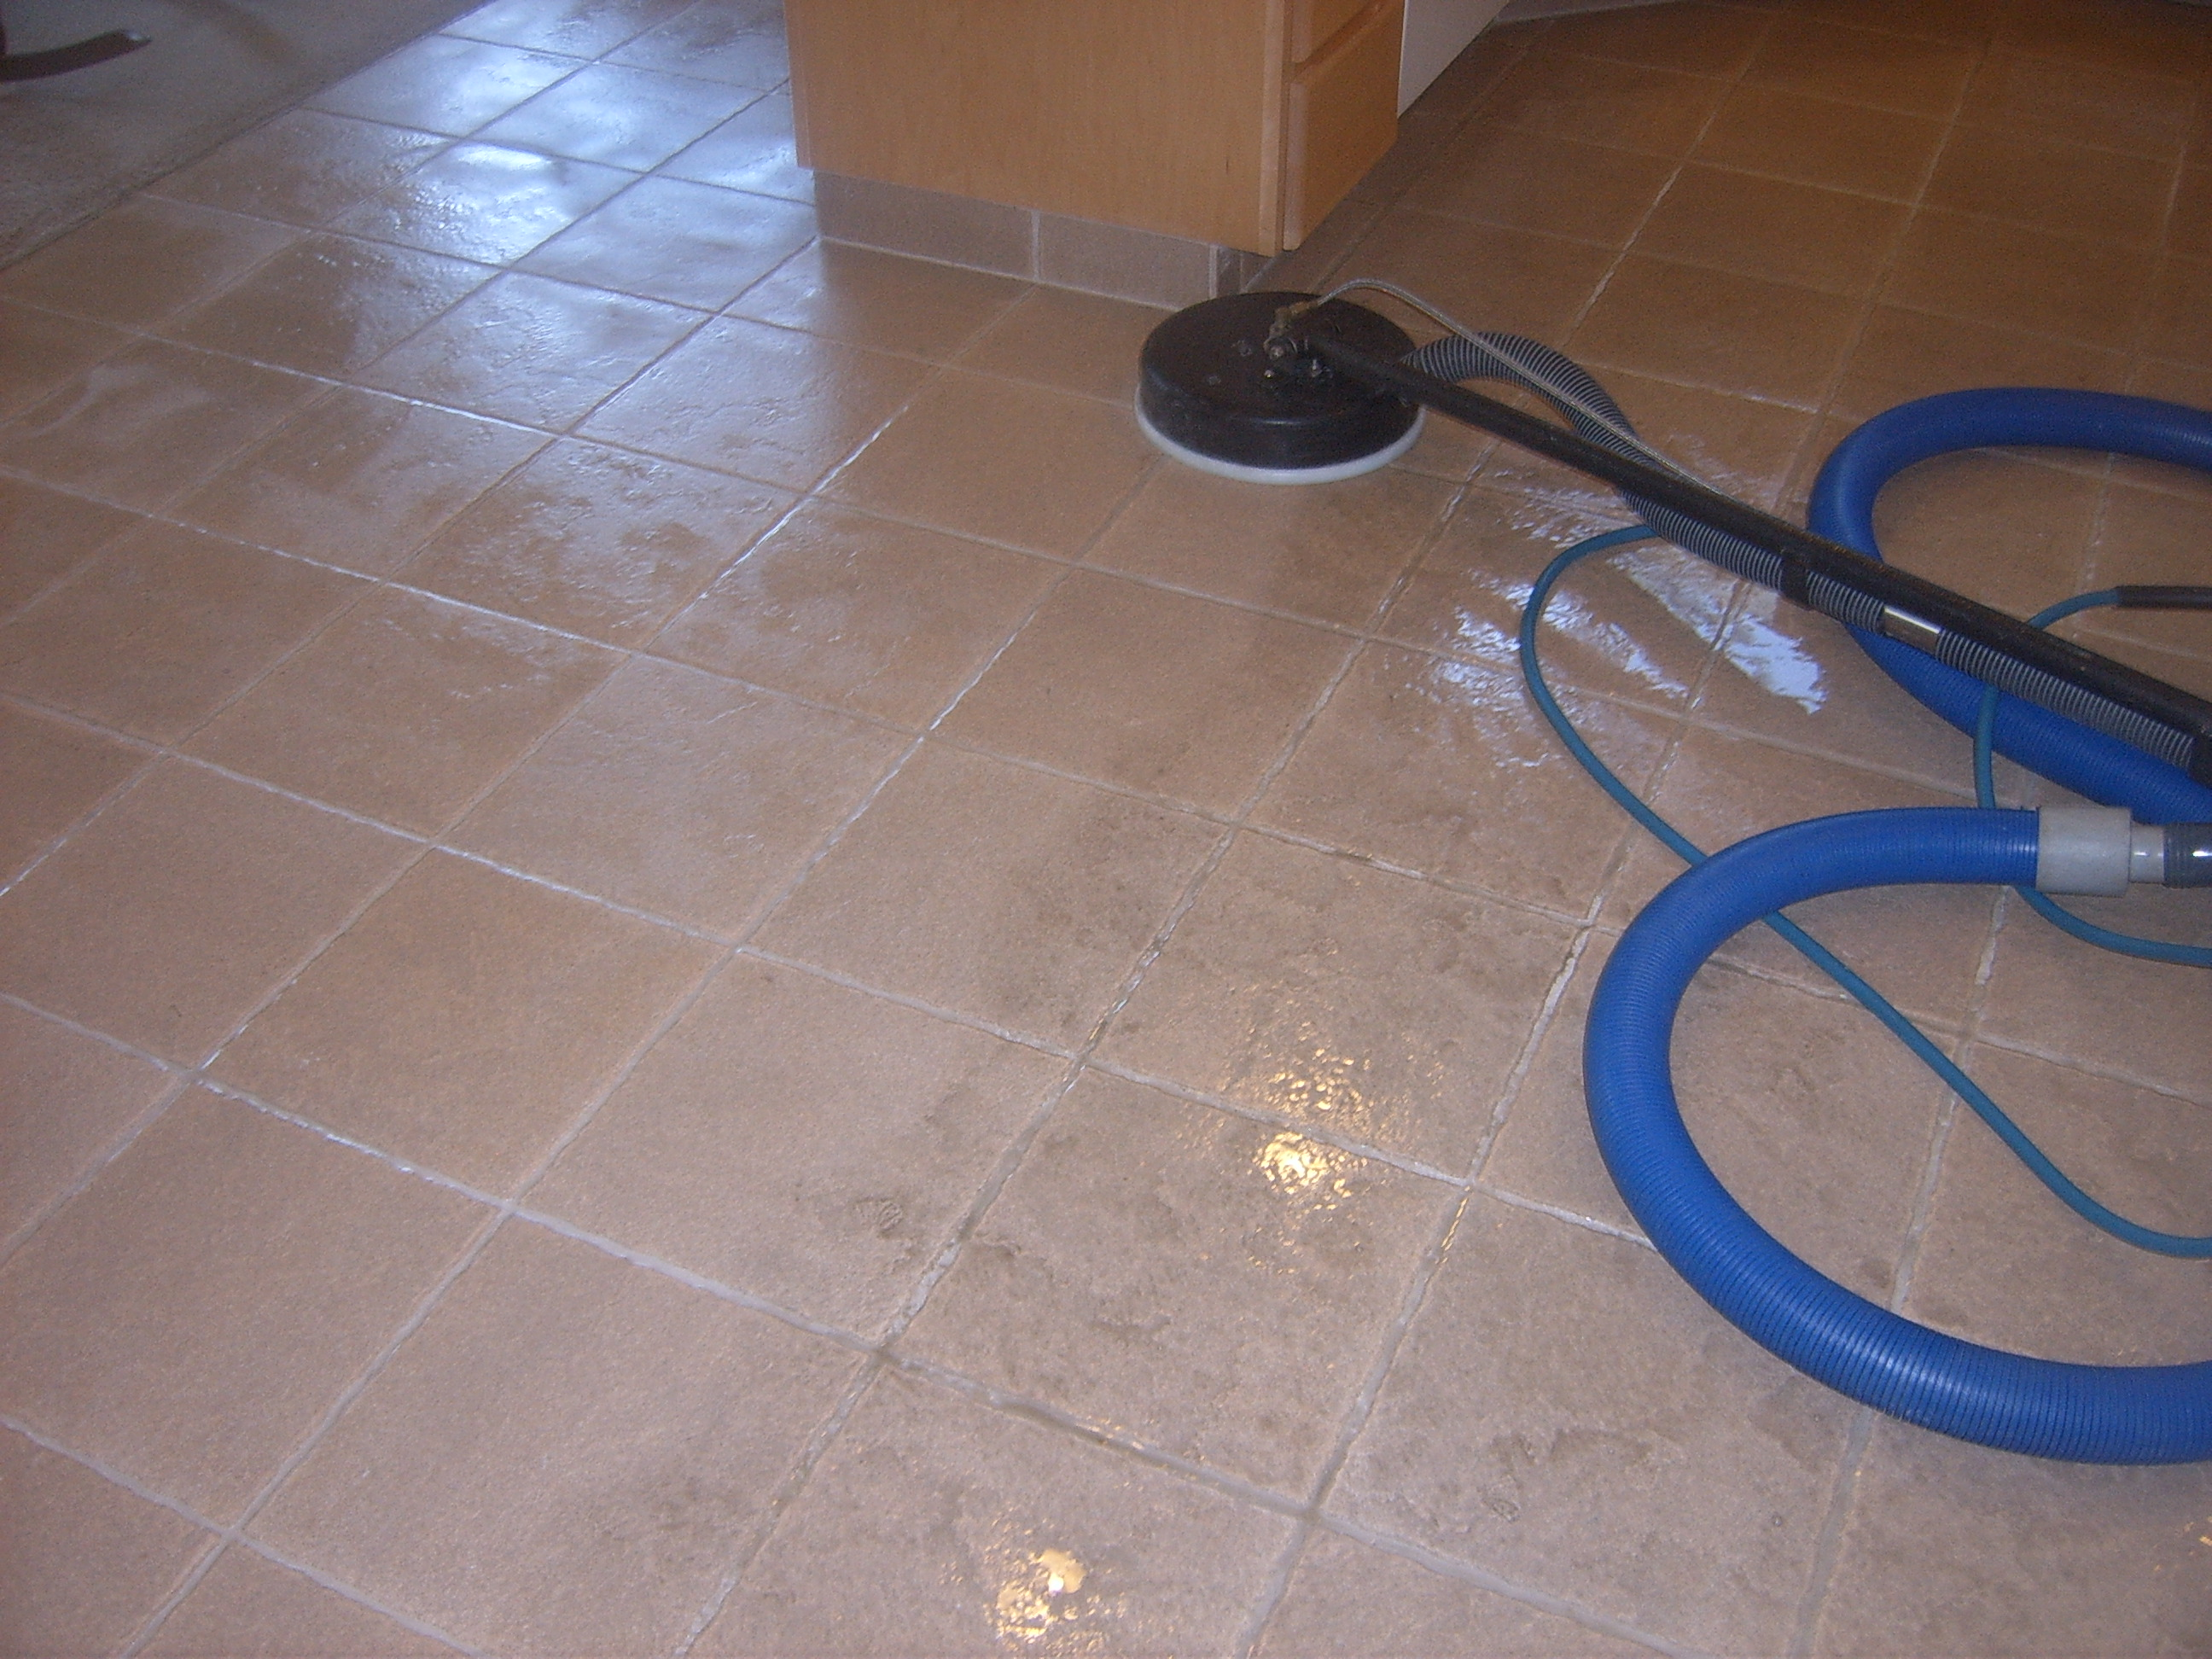 Rainbow Carpet Cleaning Ceramic Tile Grout Cleaning - How do i clean the grout on my tile floor